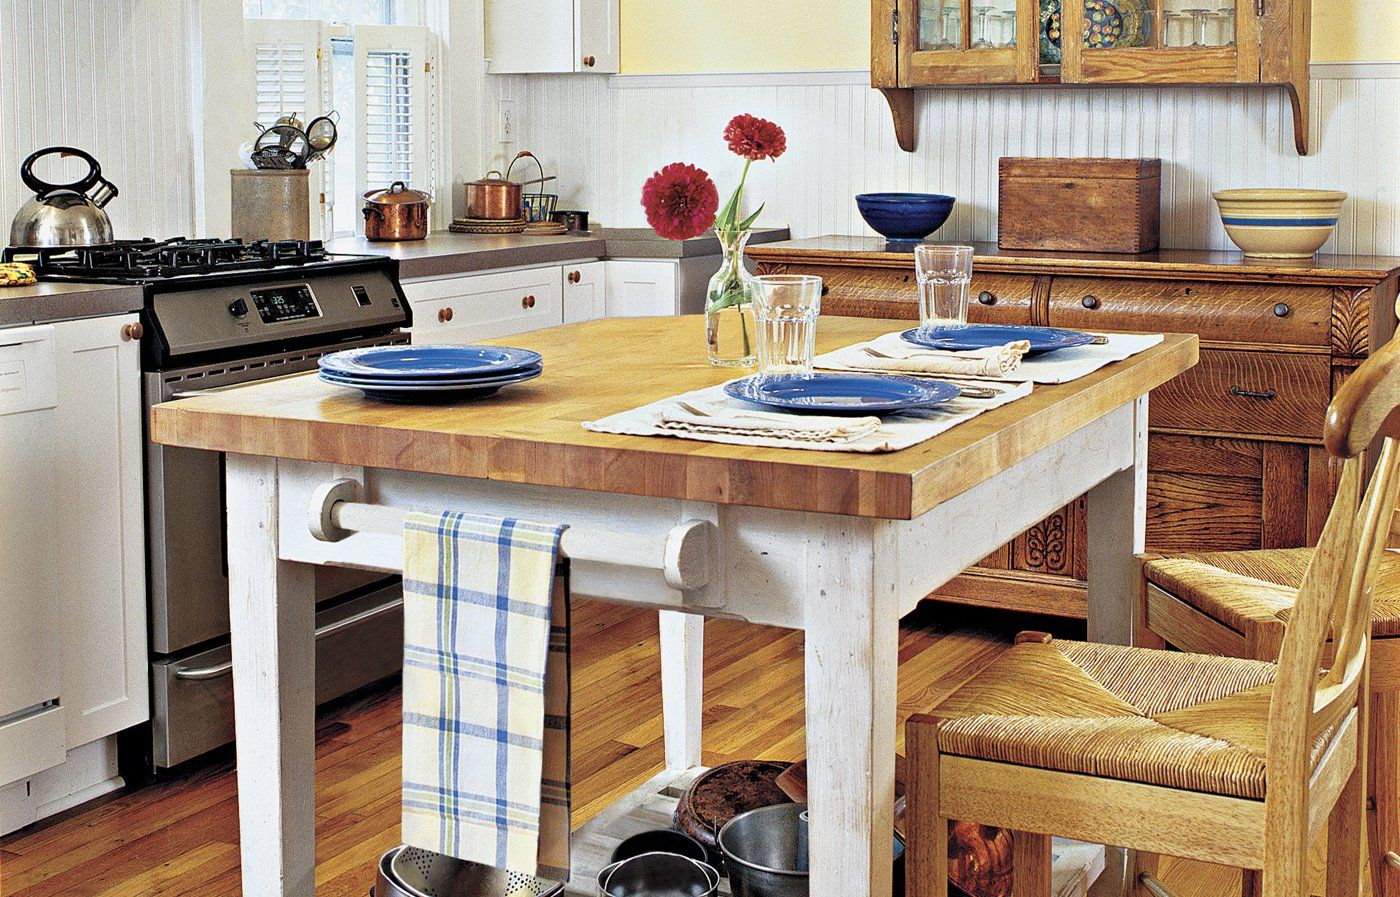 How To Build A Butcher Block Counter Island Pinterest Kitchens